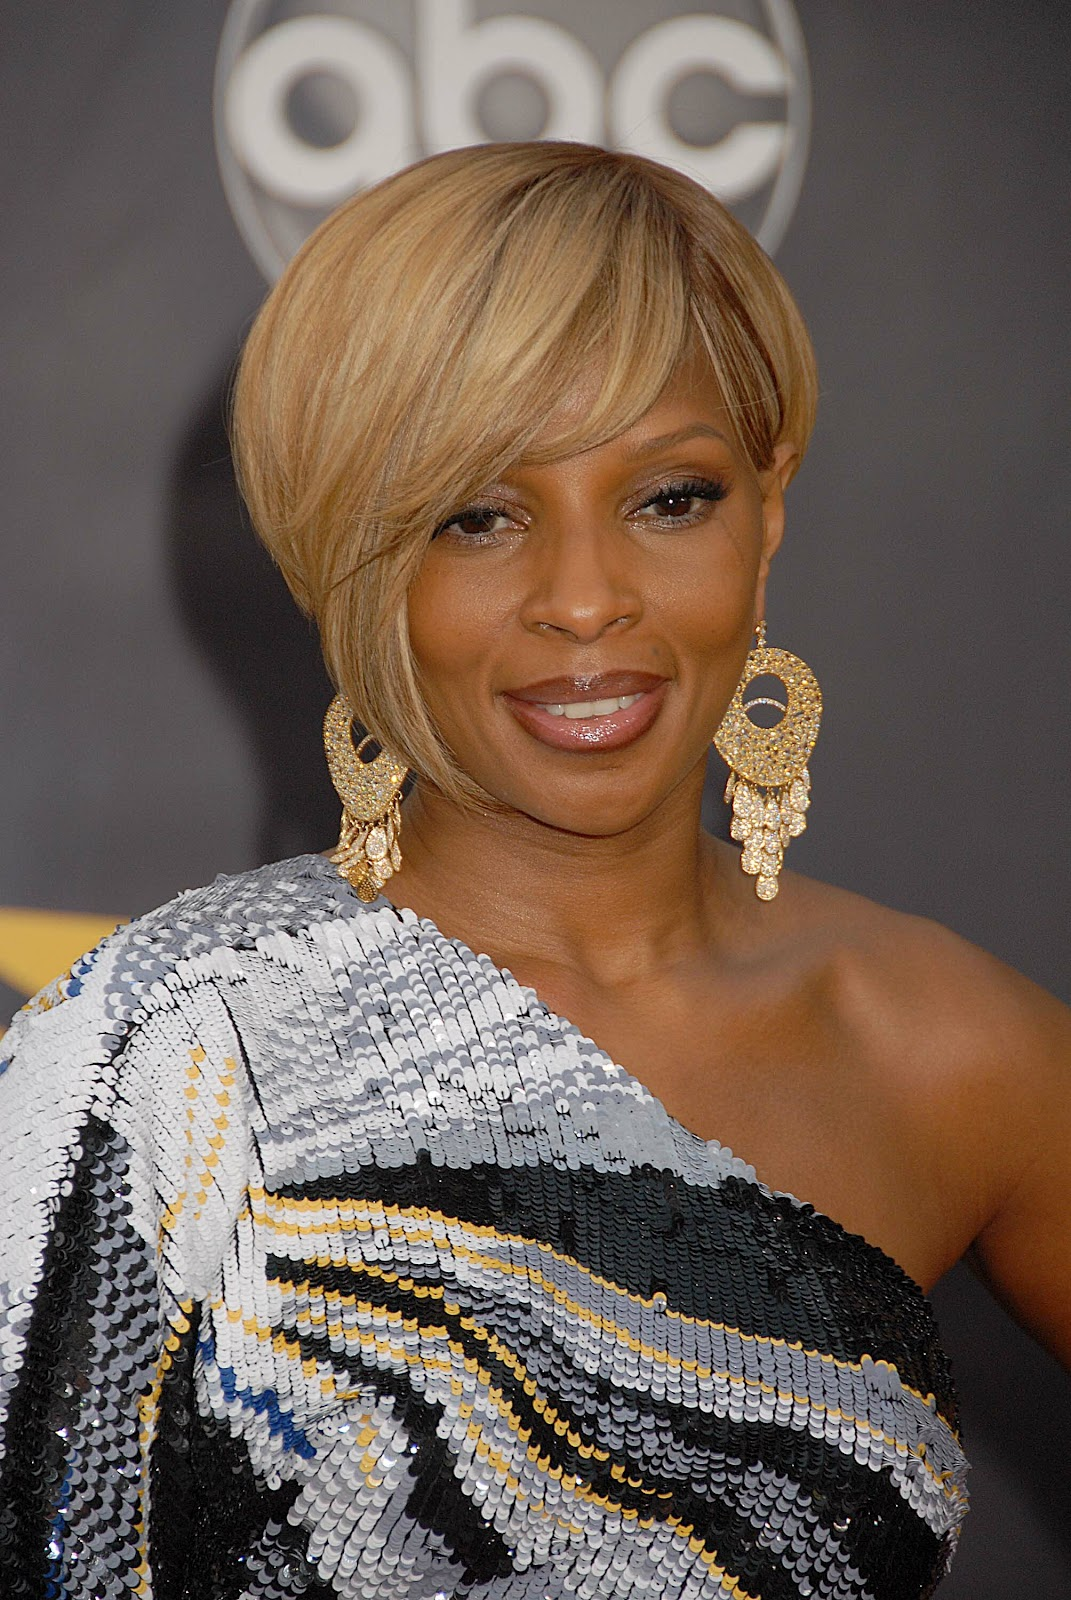 j blige hair styles j blige wallpapers high quality free 8219